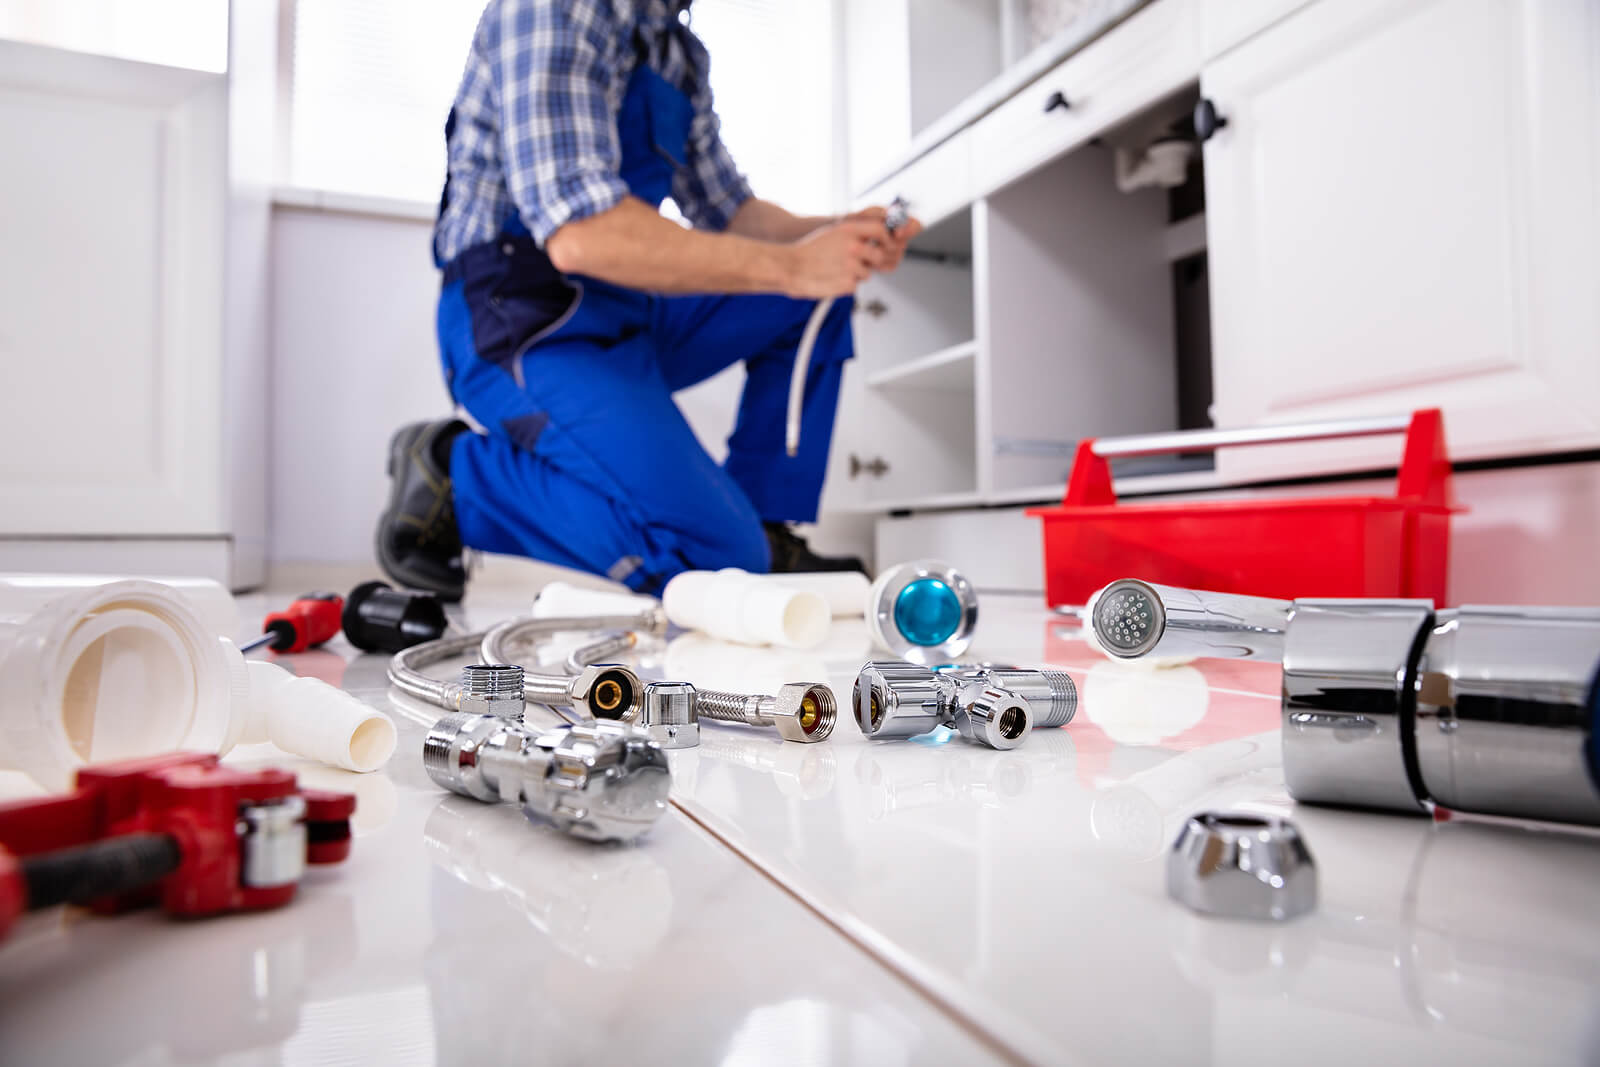 hire licensed plumber to do the job